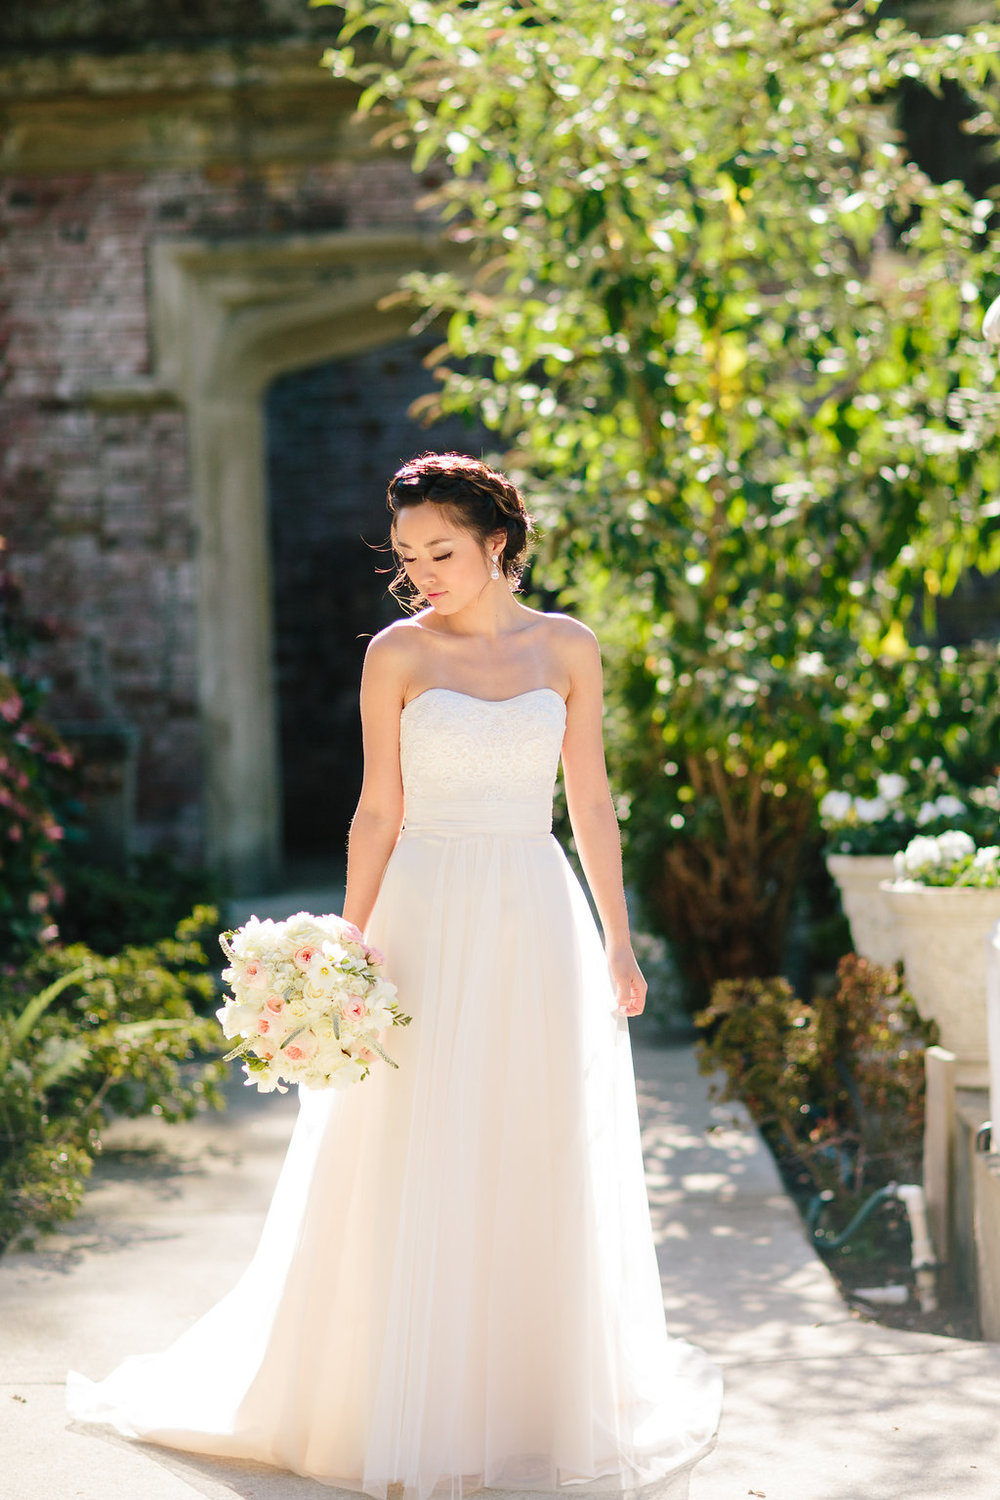 Kellylemonphotography_lucy+kento_weddingpreviews-19.jpg